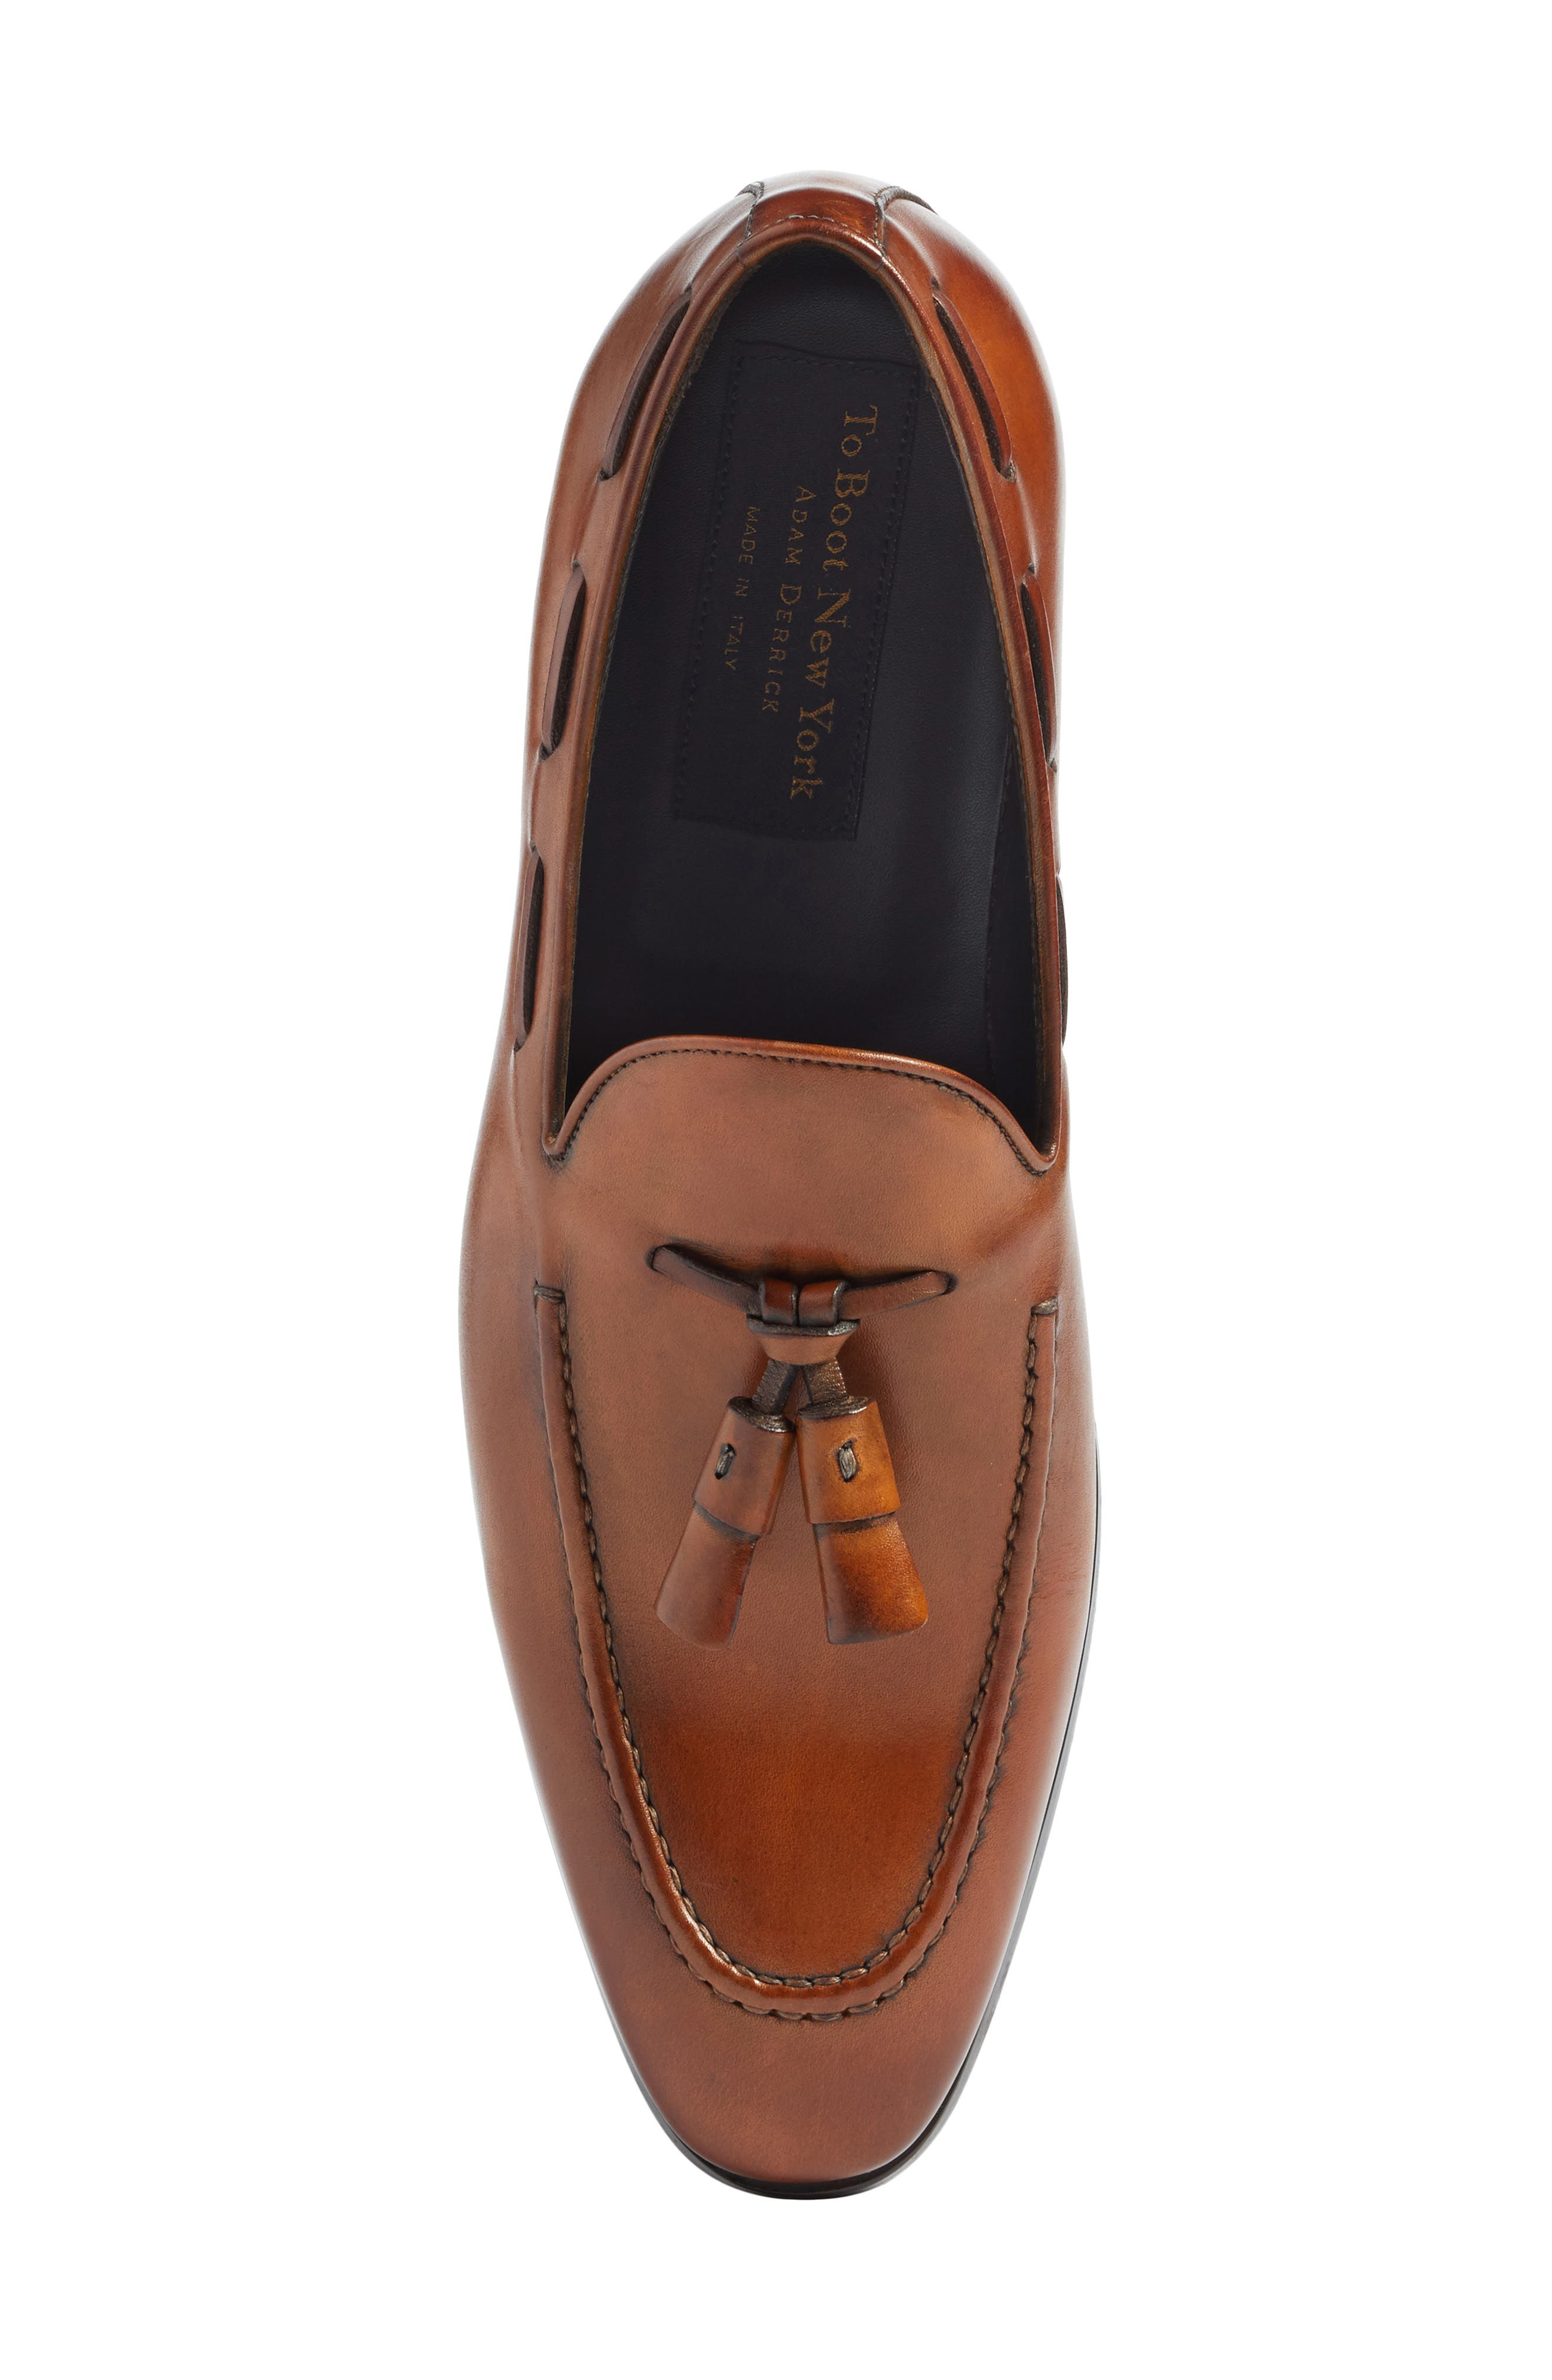 Barclay Tassel Loafer,                             Alternate thumbnail 5, color,                             COGNAC LEATHER